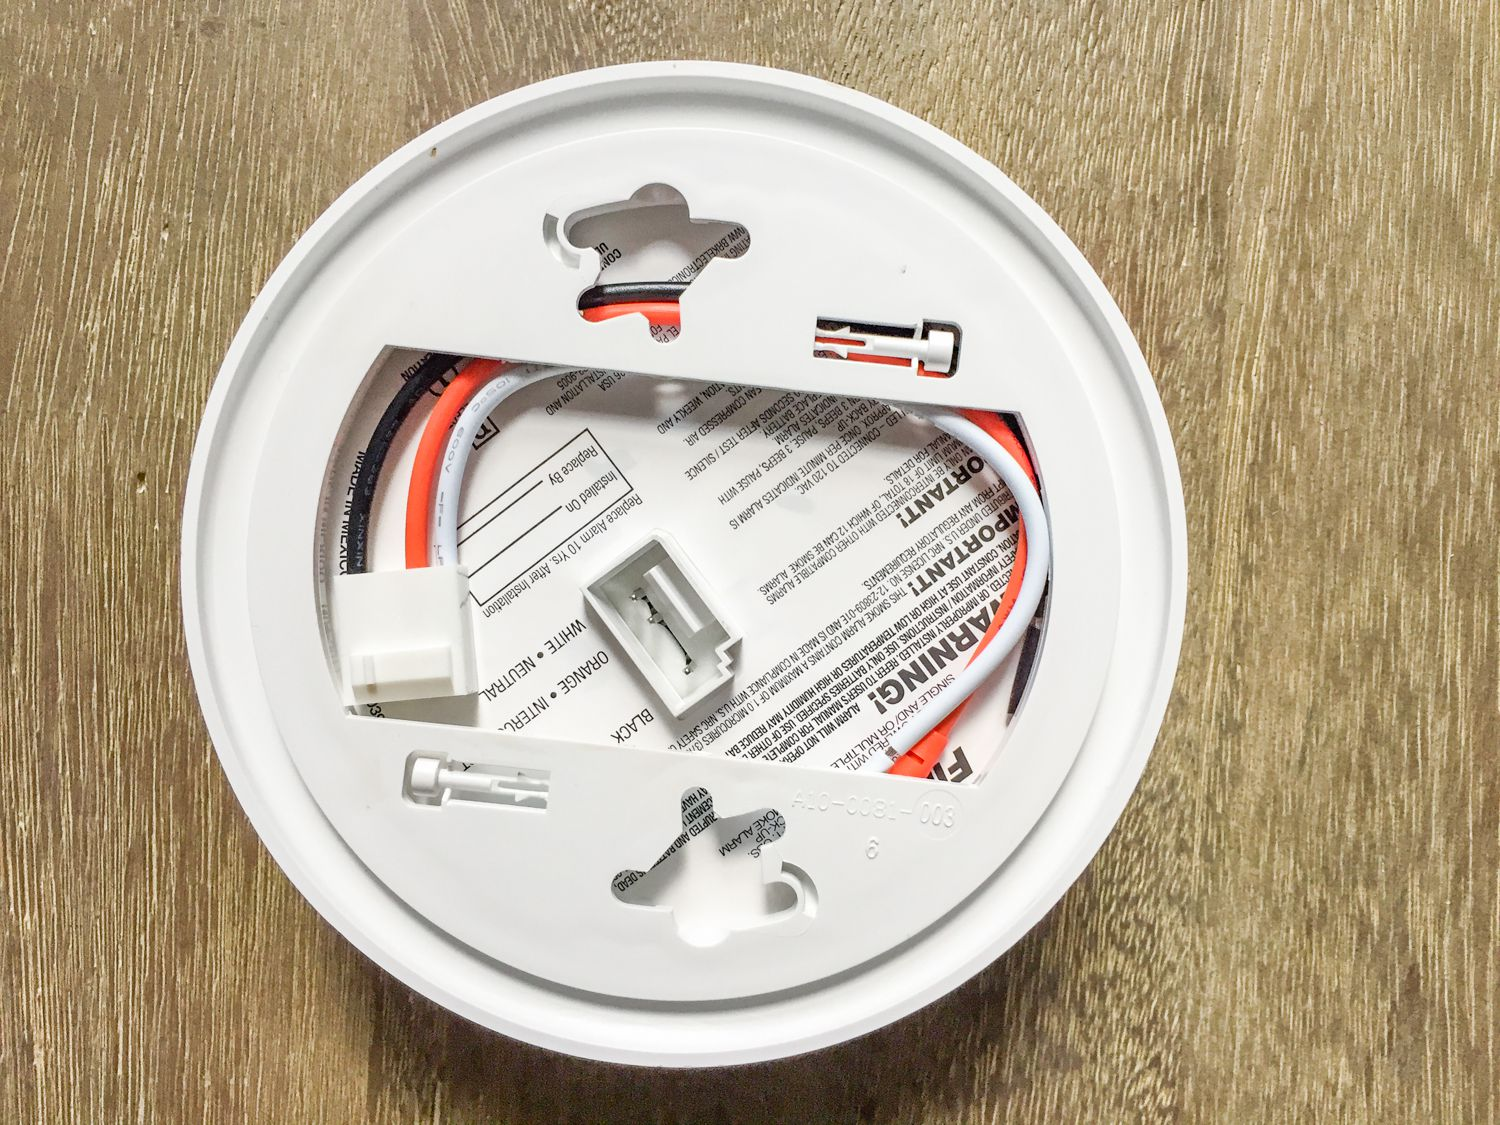 The 8 Best Smoke Detectors To Buy In 2019 One Two And Then Three Leds Connected Battery Pack Series